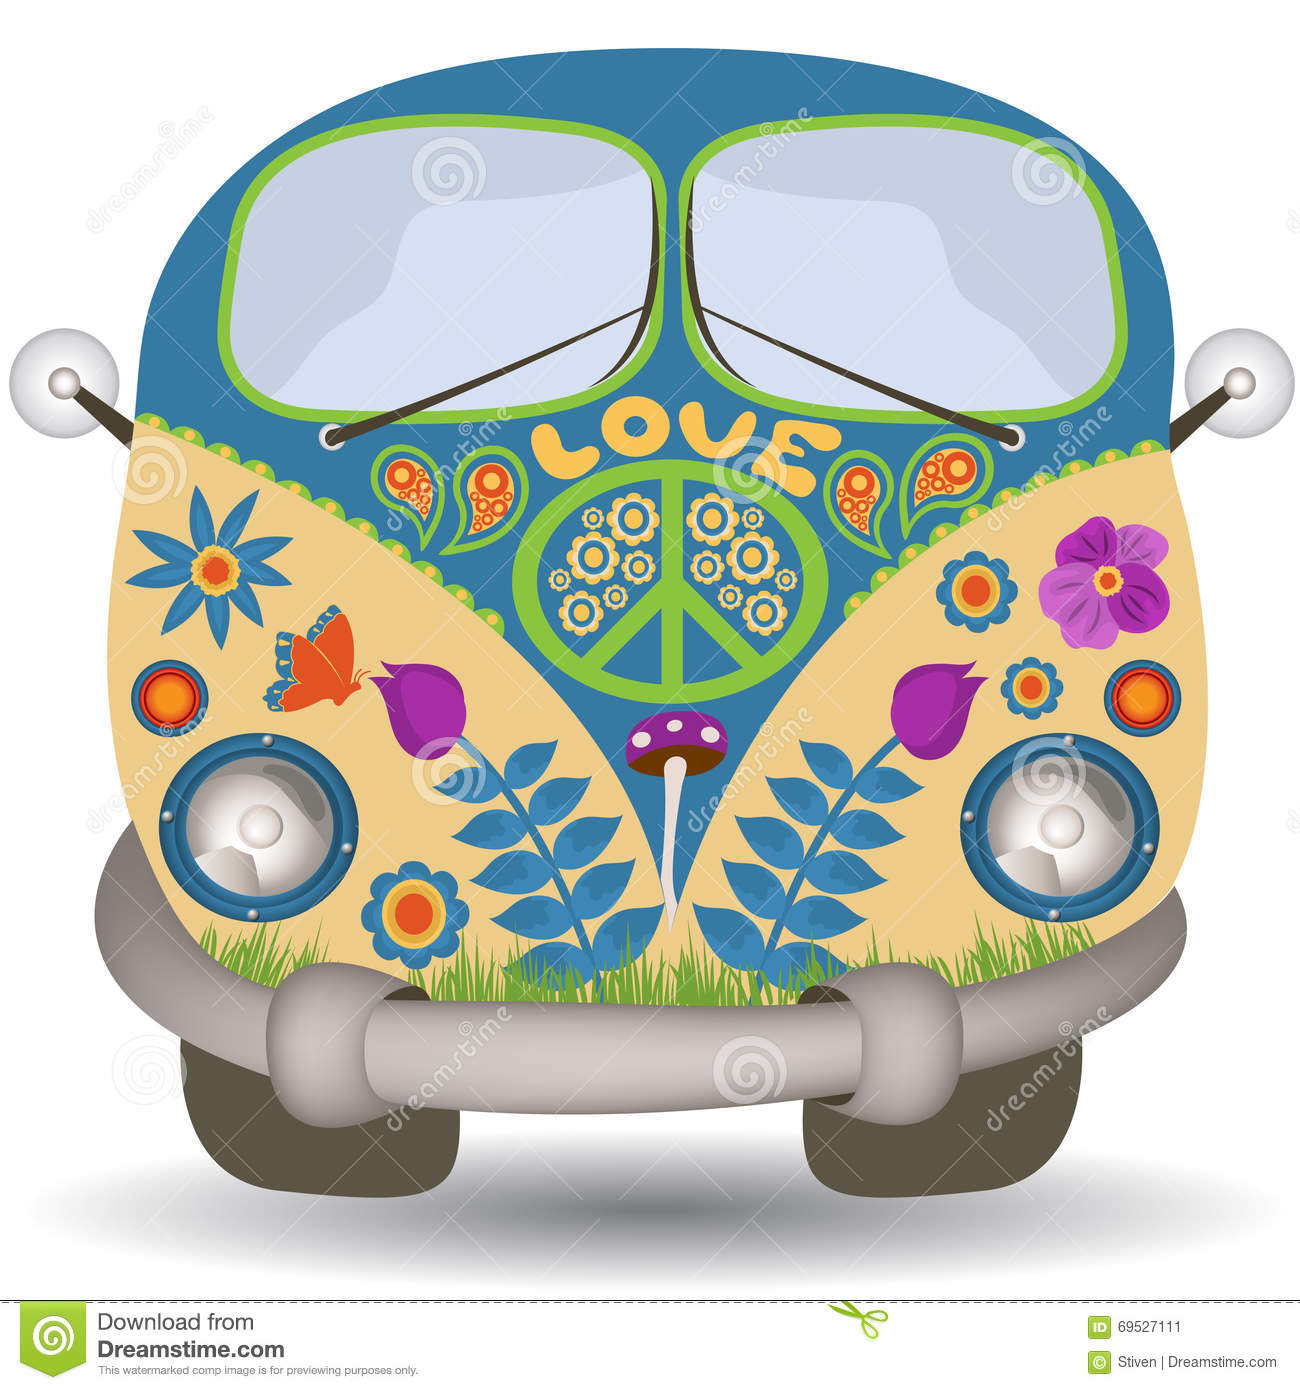 Flower Power Van Stock Vector Image 69527111 : flower power van vector illustration hippie vintage car mini front view 69527111 from www.dreamstime.com size 1300 x 1390 jpeg 200kB